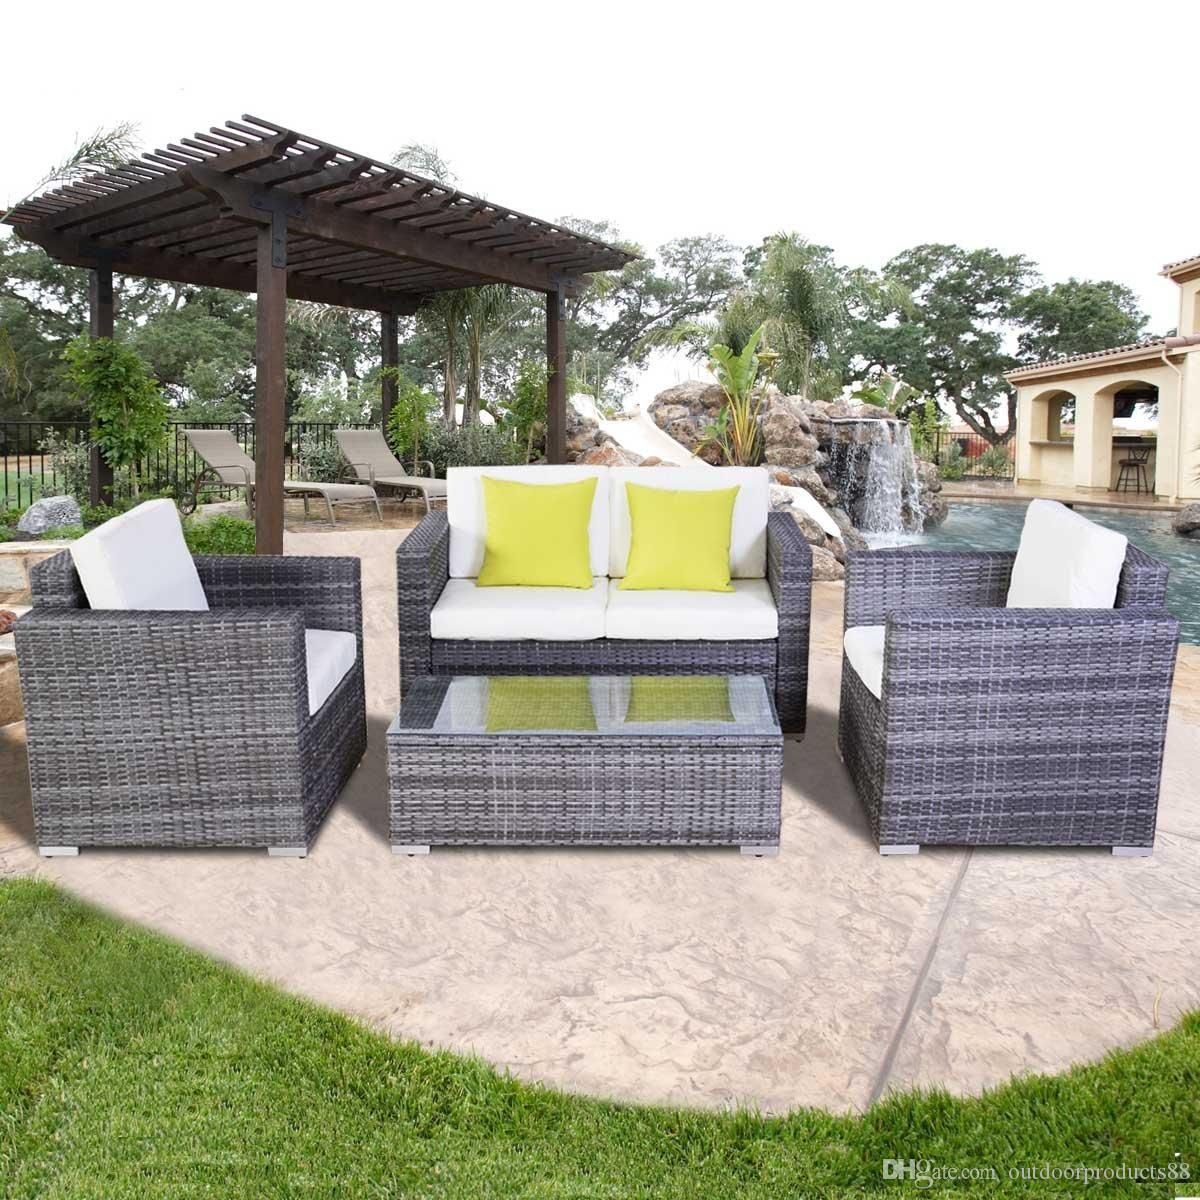 acheter nouveaux meubles de jardin vente chaude patio ext rieur chaises de table de canap en. Black Bedroom Furniture Sets. Home Design Ideas